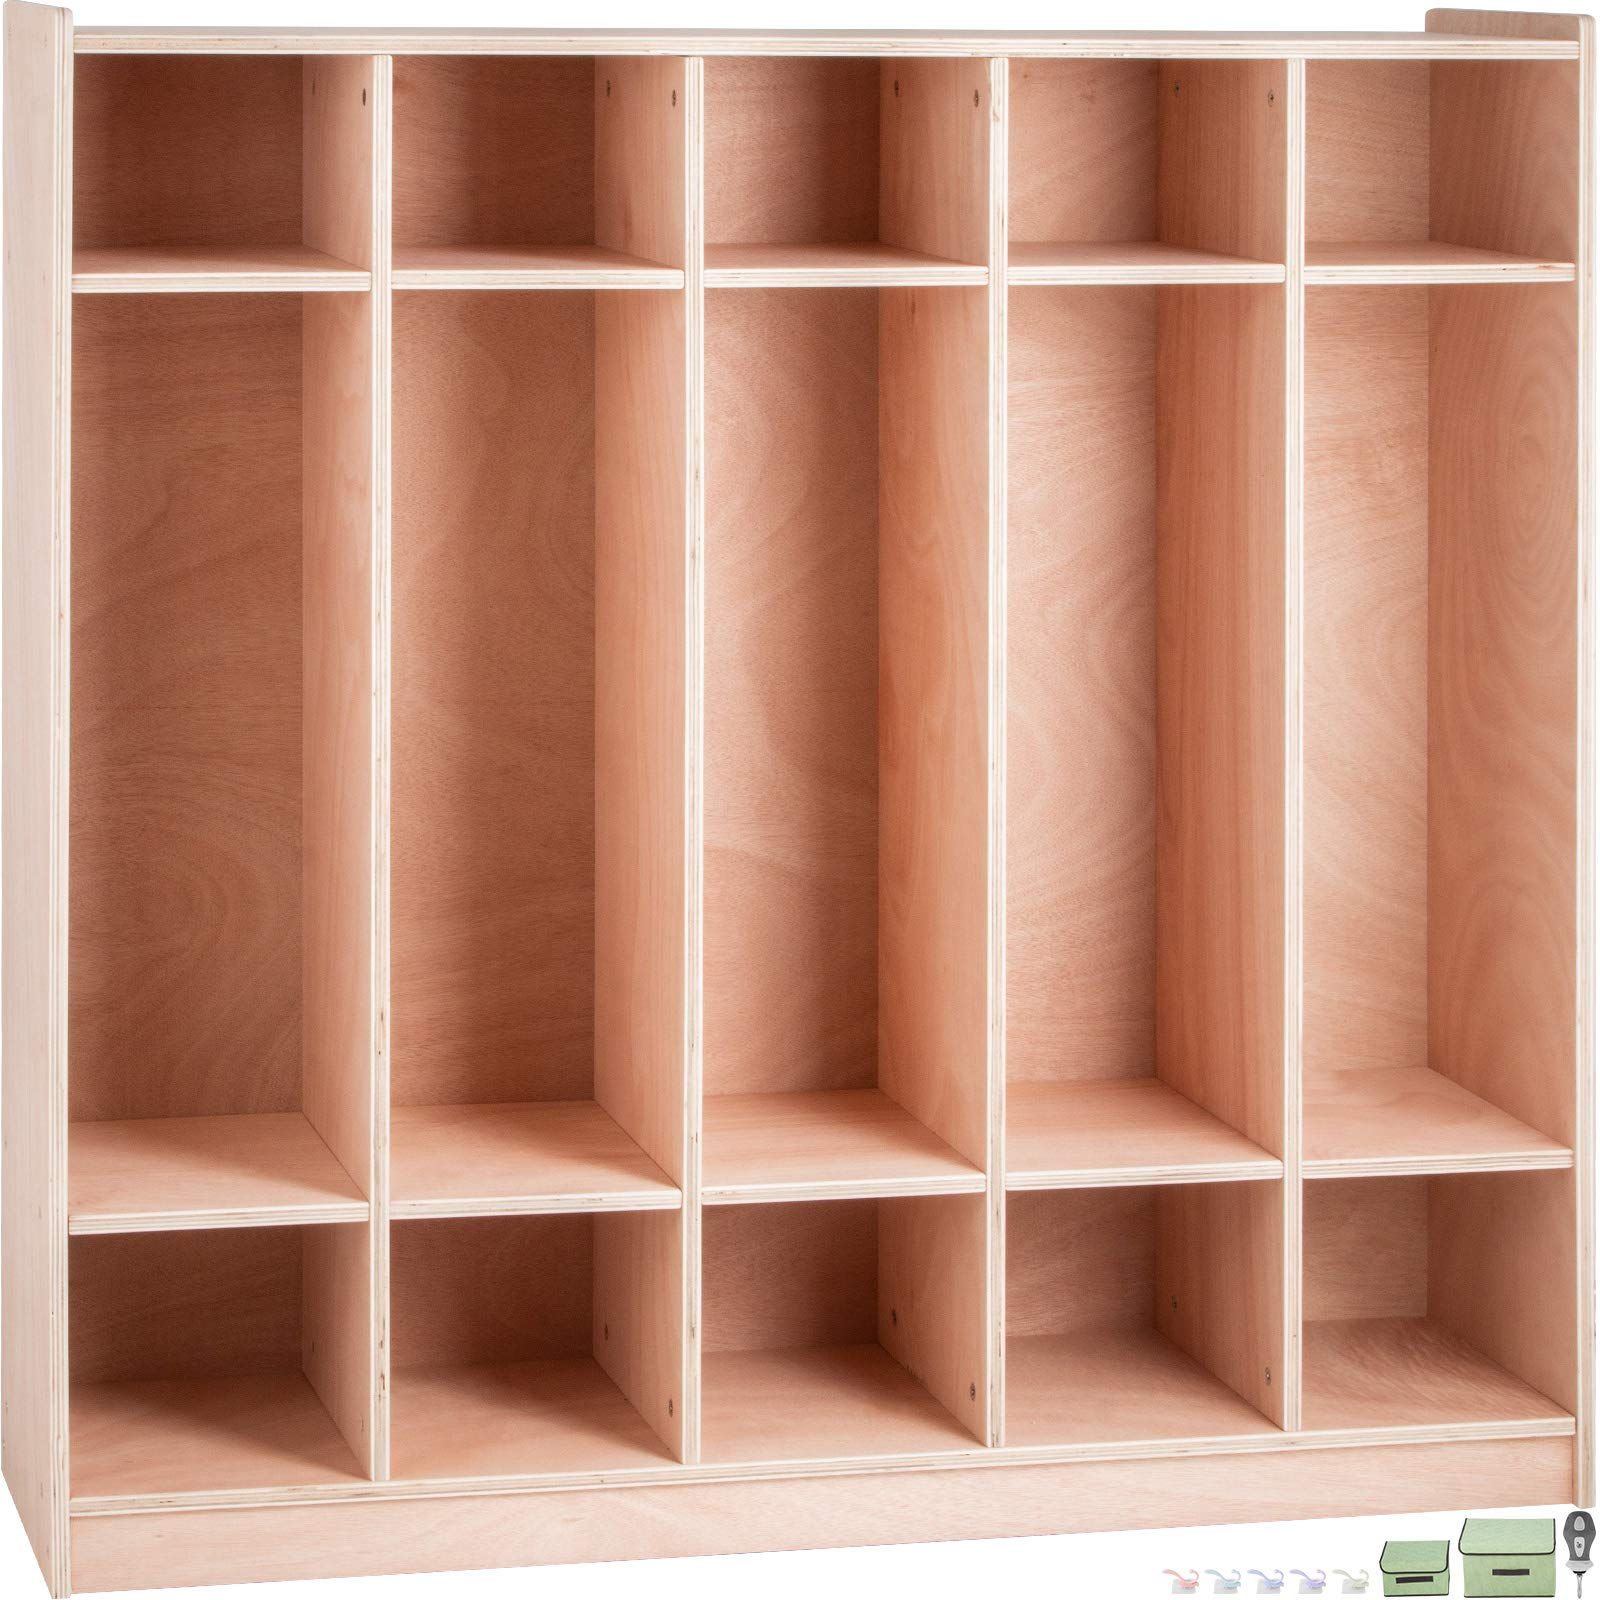 Happybuy Preschool Cubby Lockers 5-Section Plywood Birch Coat Locker 15MM Thickness Kids Locker for Home 48.4 Inch High Durable Classroom Lockers for Toddlers and Kids Commercial or Personal Use